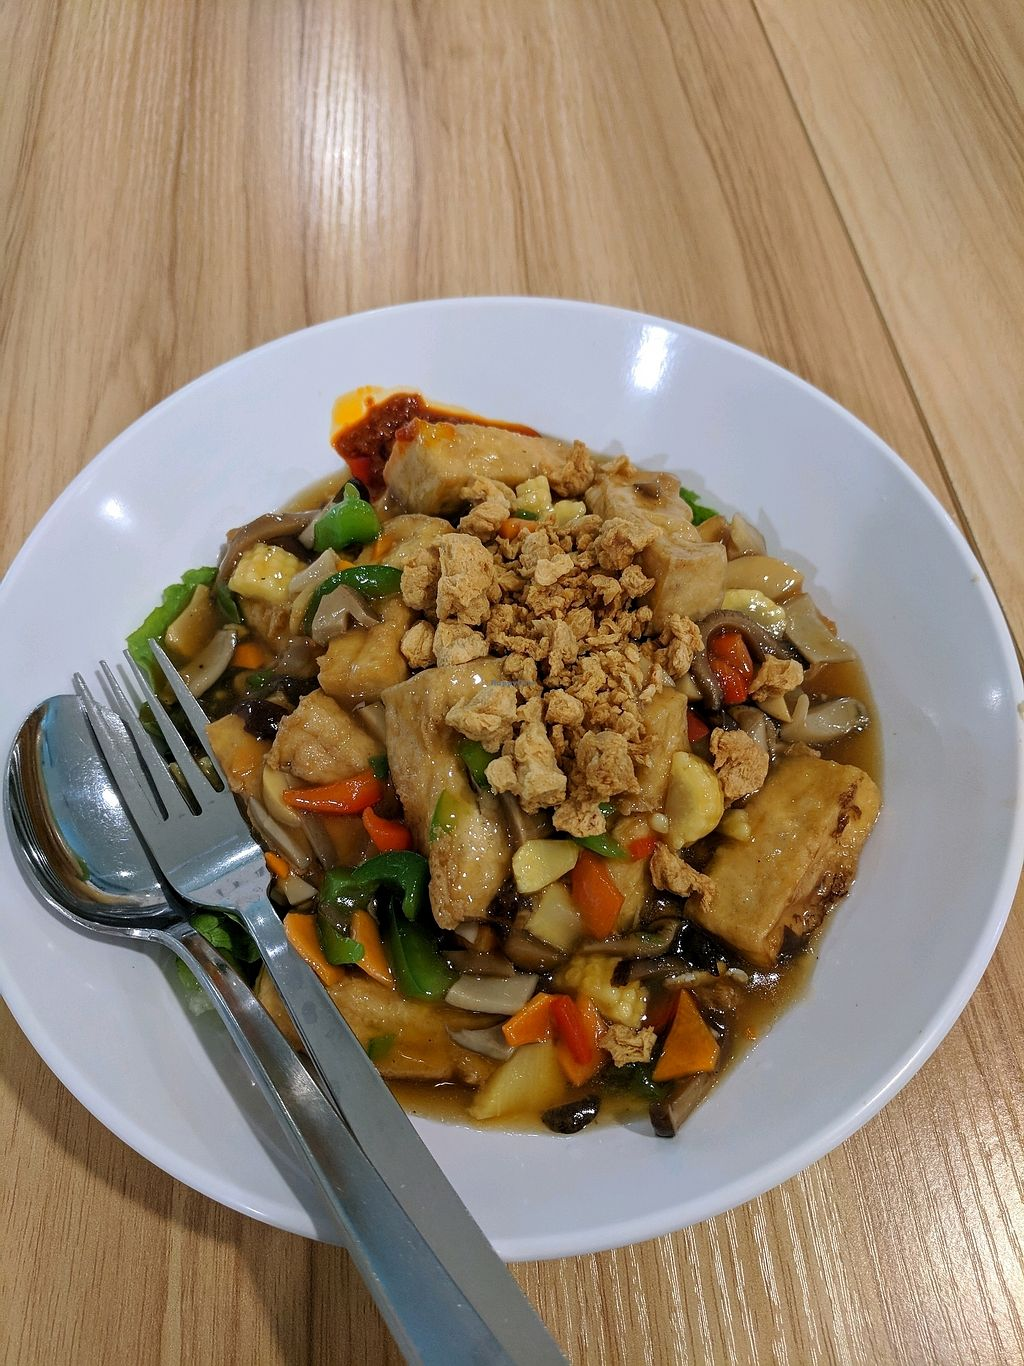 """Photo of Green Delights  by <a href=""""/members/profile/SonyaMohinani"""">SonyaMohinani</a> <br/>braised beancurd with vegetables <br/> October 23, 2017  - <a href='/contact/abuse/image/58585/317935'>Report</a>"""